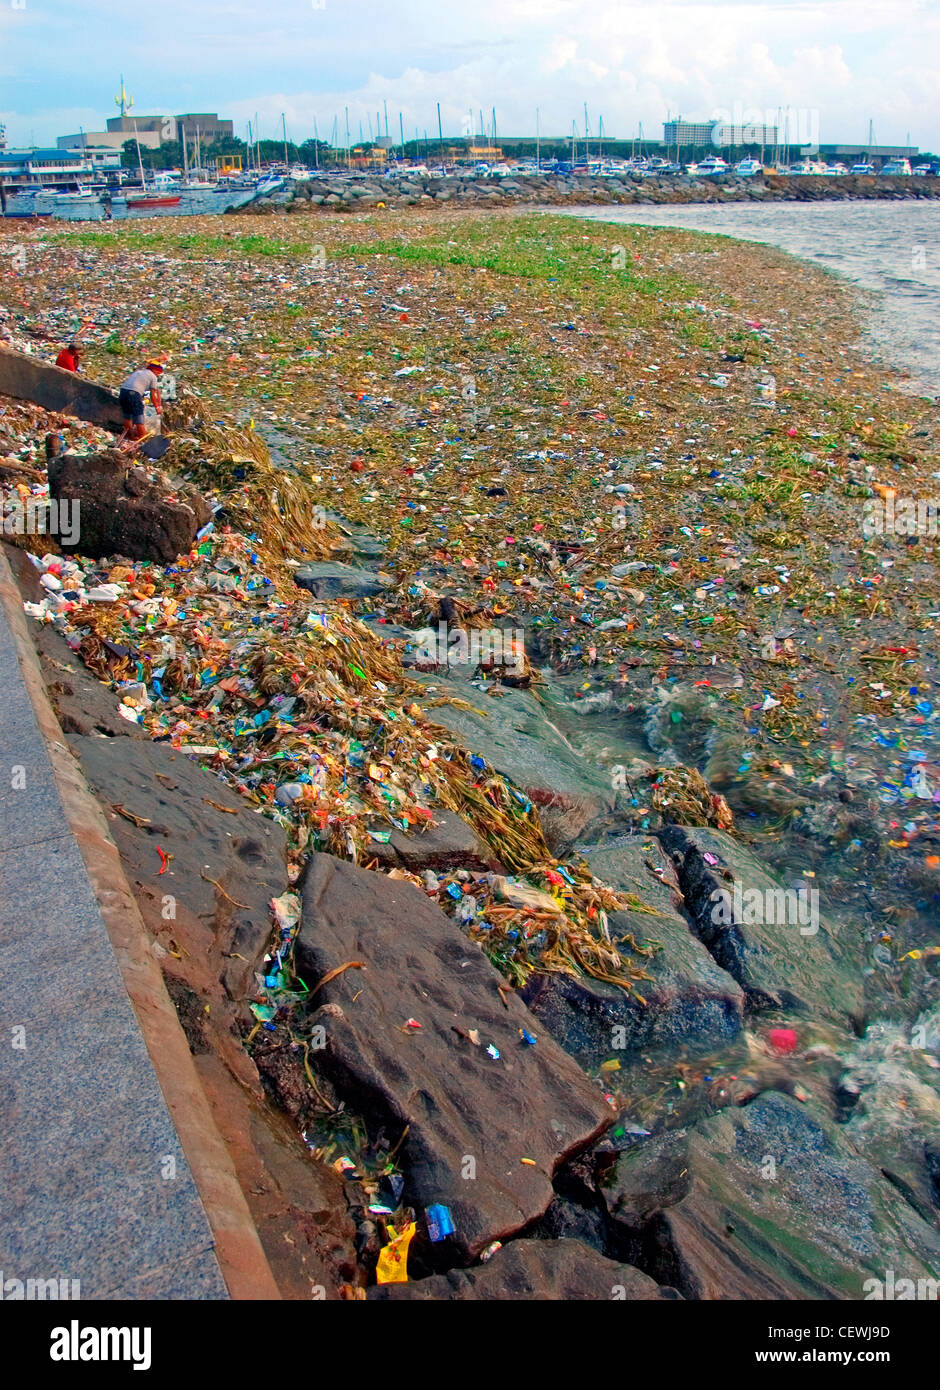 Rubbish and waste floating along the famous tourist attraction, Manila bay, Roxas Boulevard, Philippines. - Stock Image